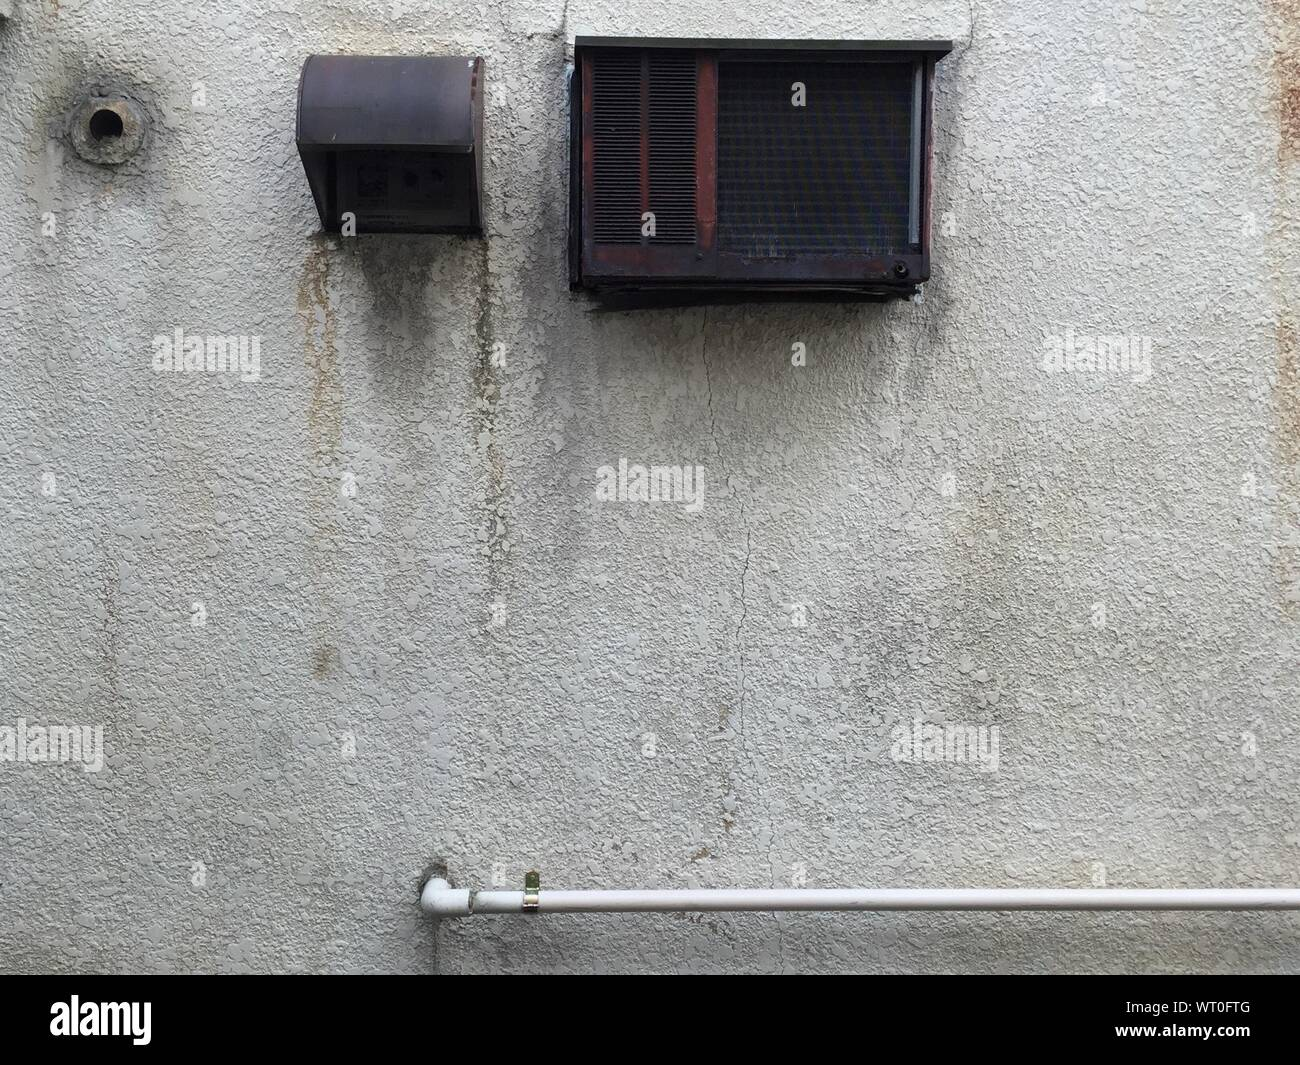 Air Conditioner And Duct With Pipe On Wall Stock Photo